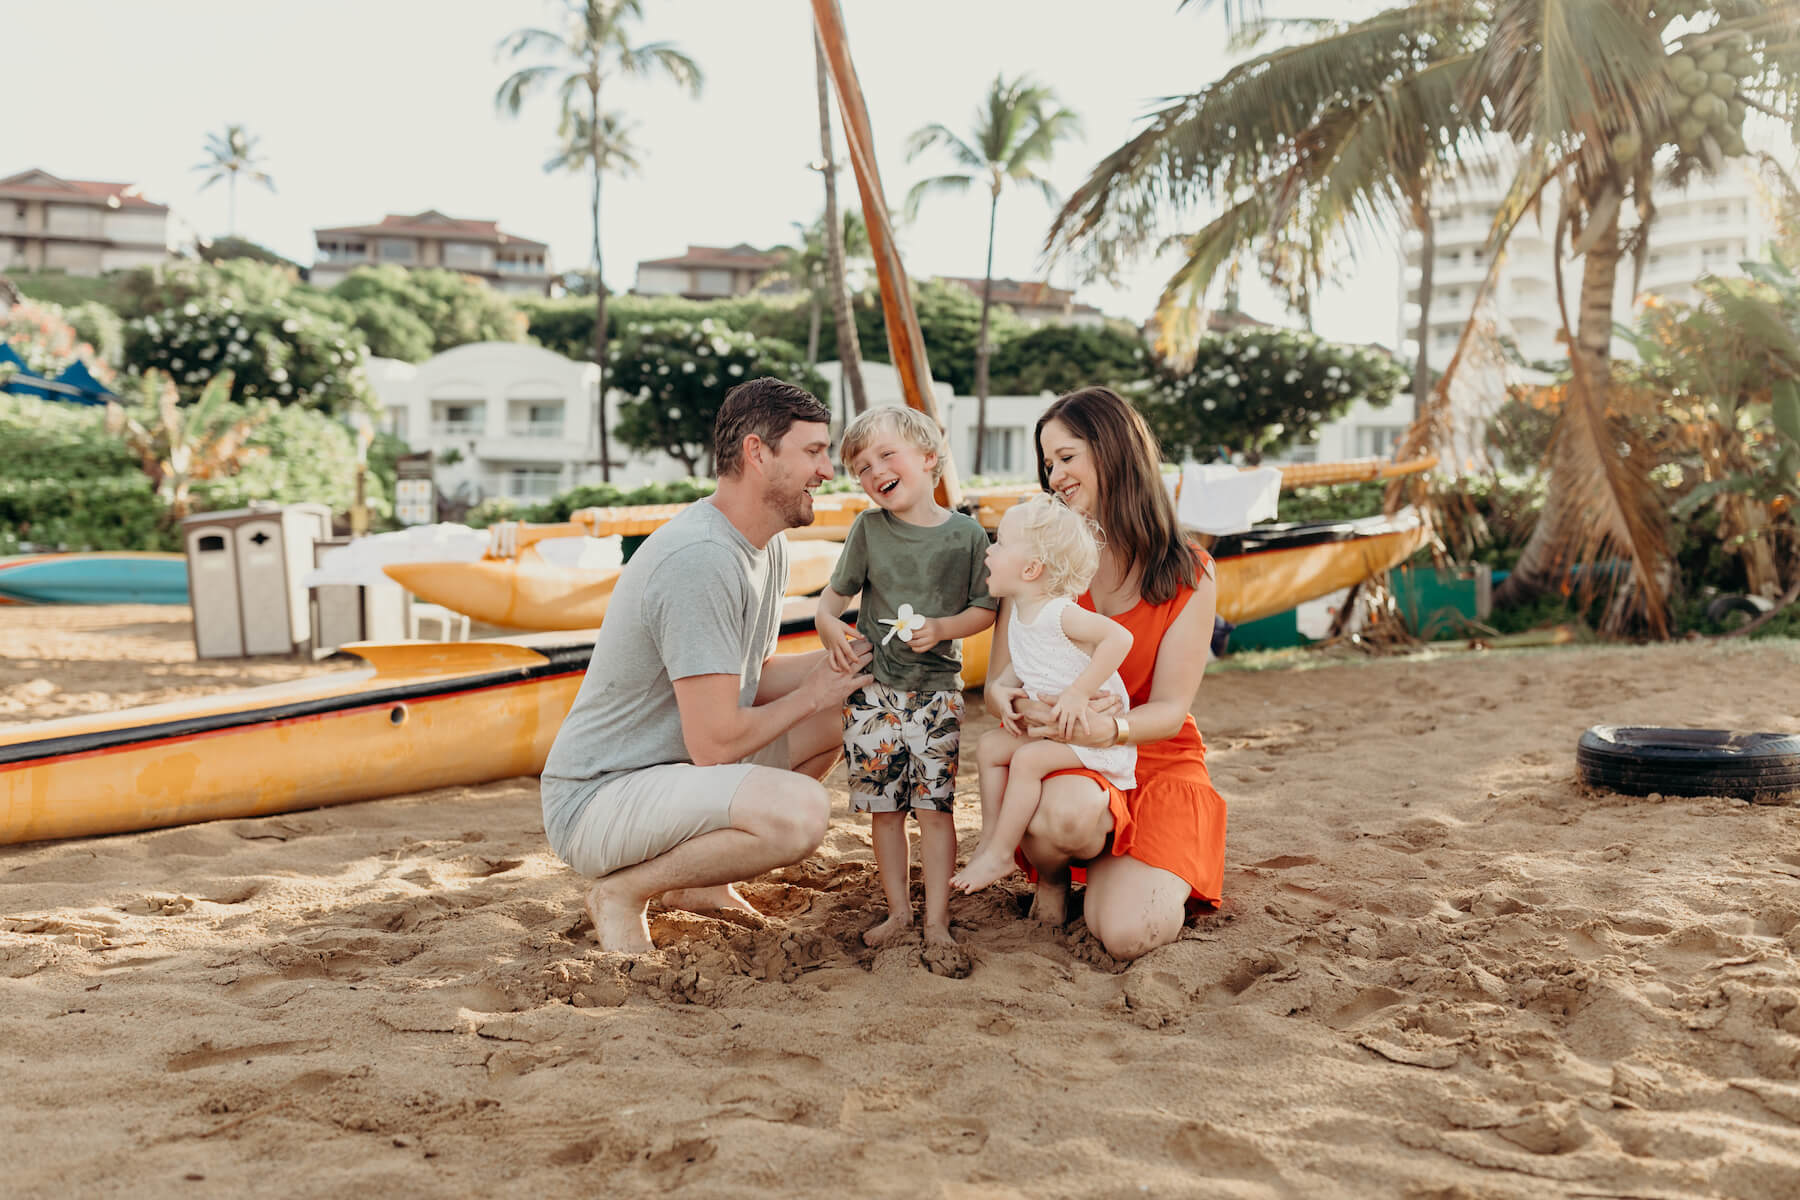 a family of four on the beach in Maui, Hawaii